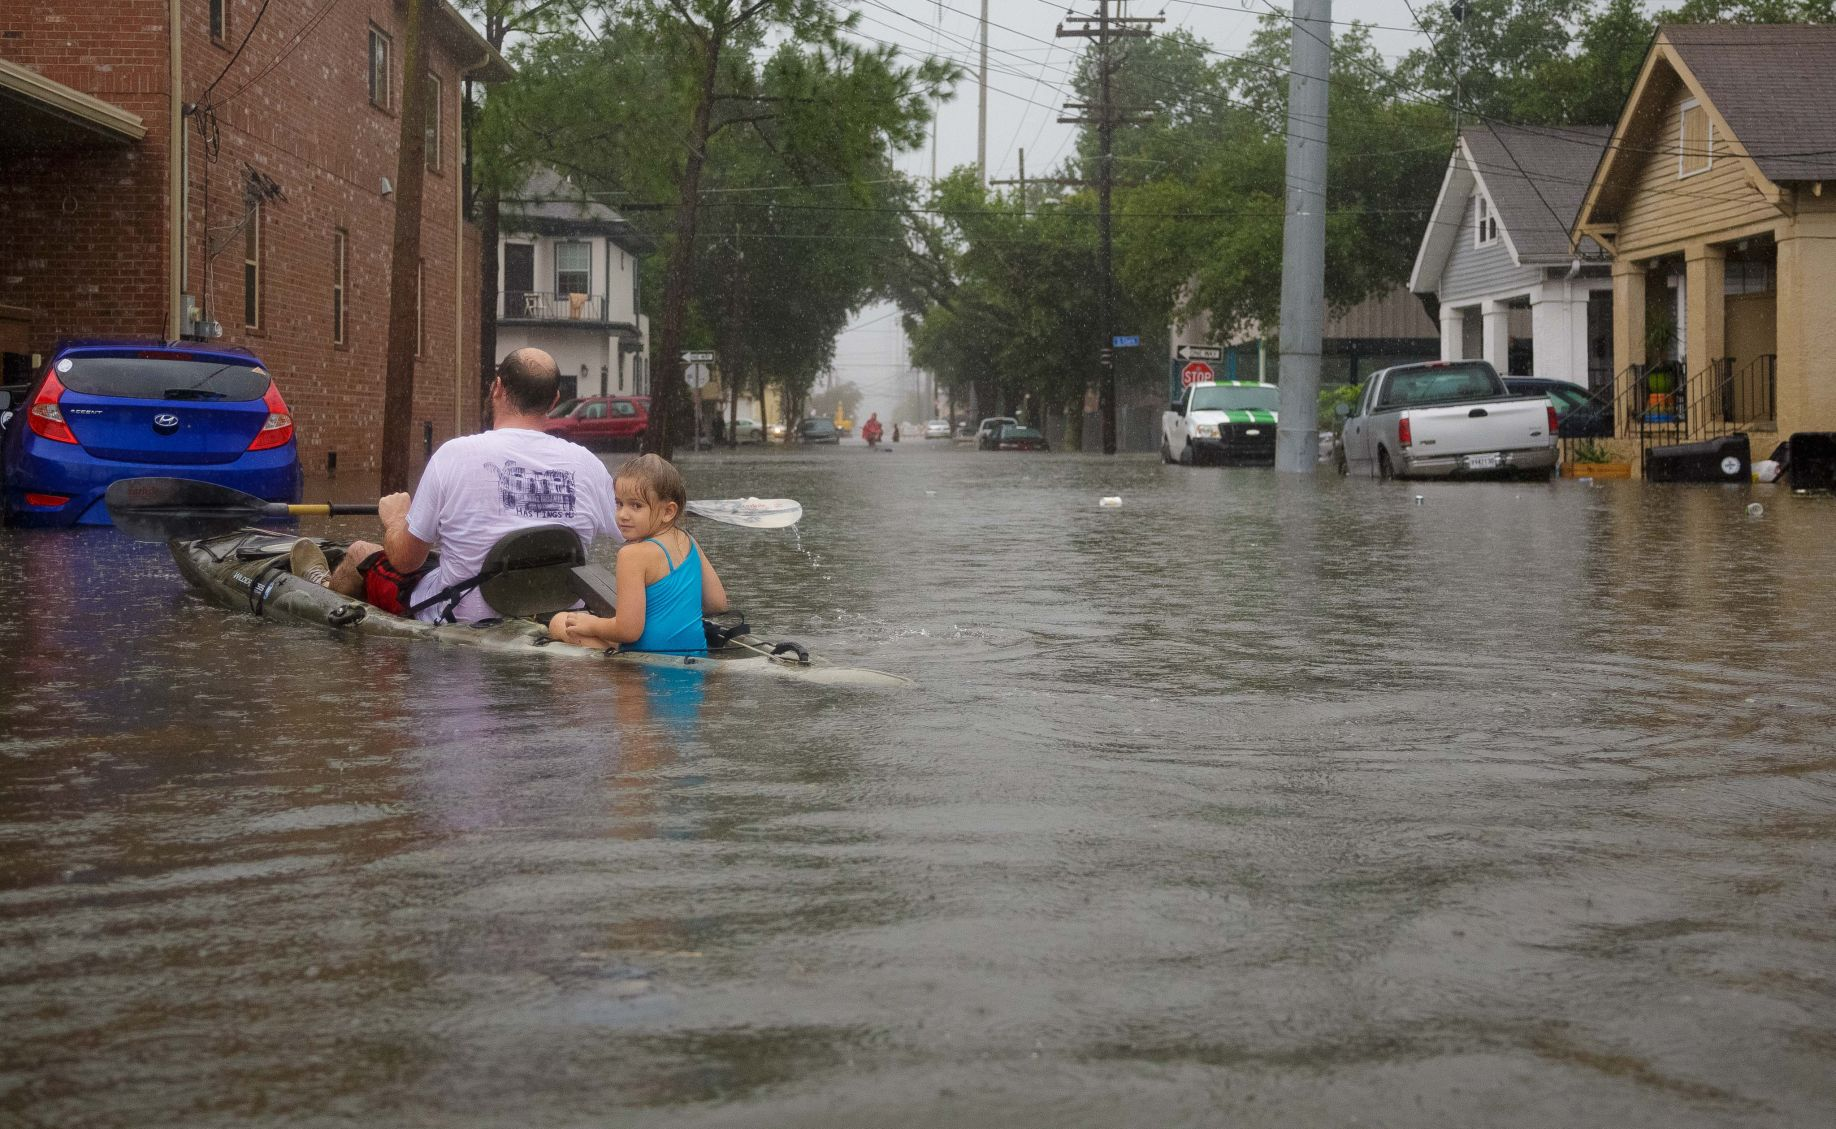 Heavy rains in New Orleans overwhelmed city's pump stations